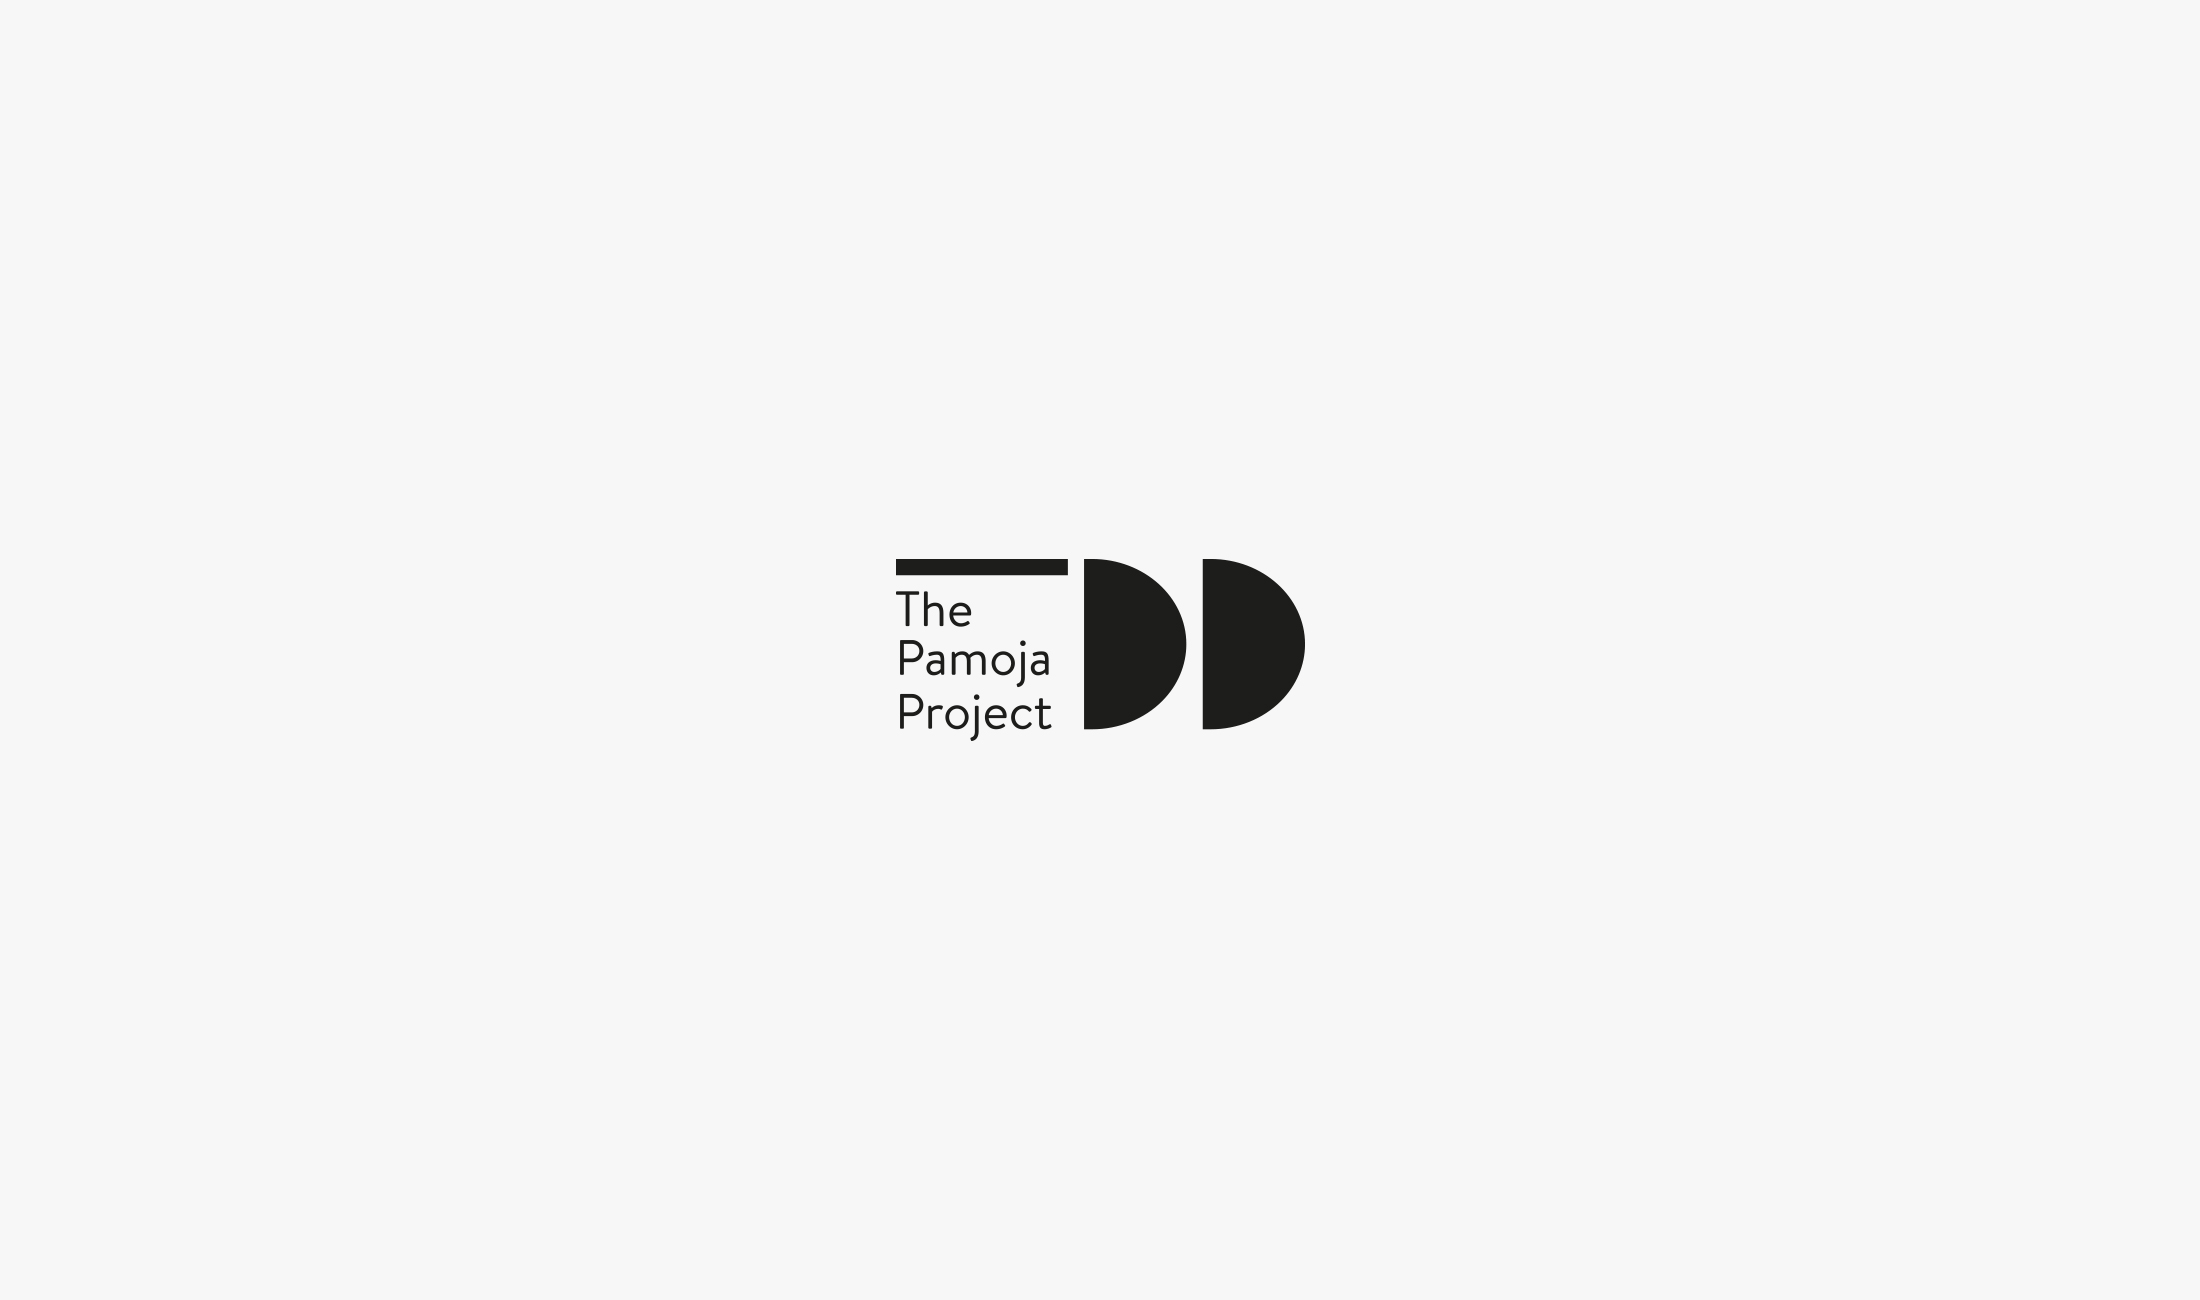 The-pamoja-project©-elena-manfredi_logo